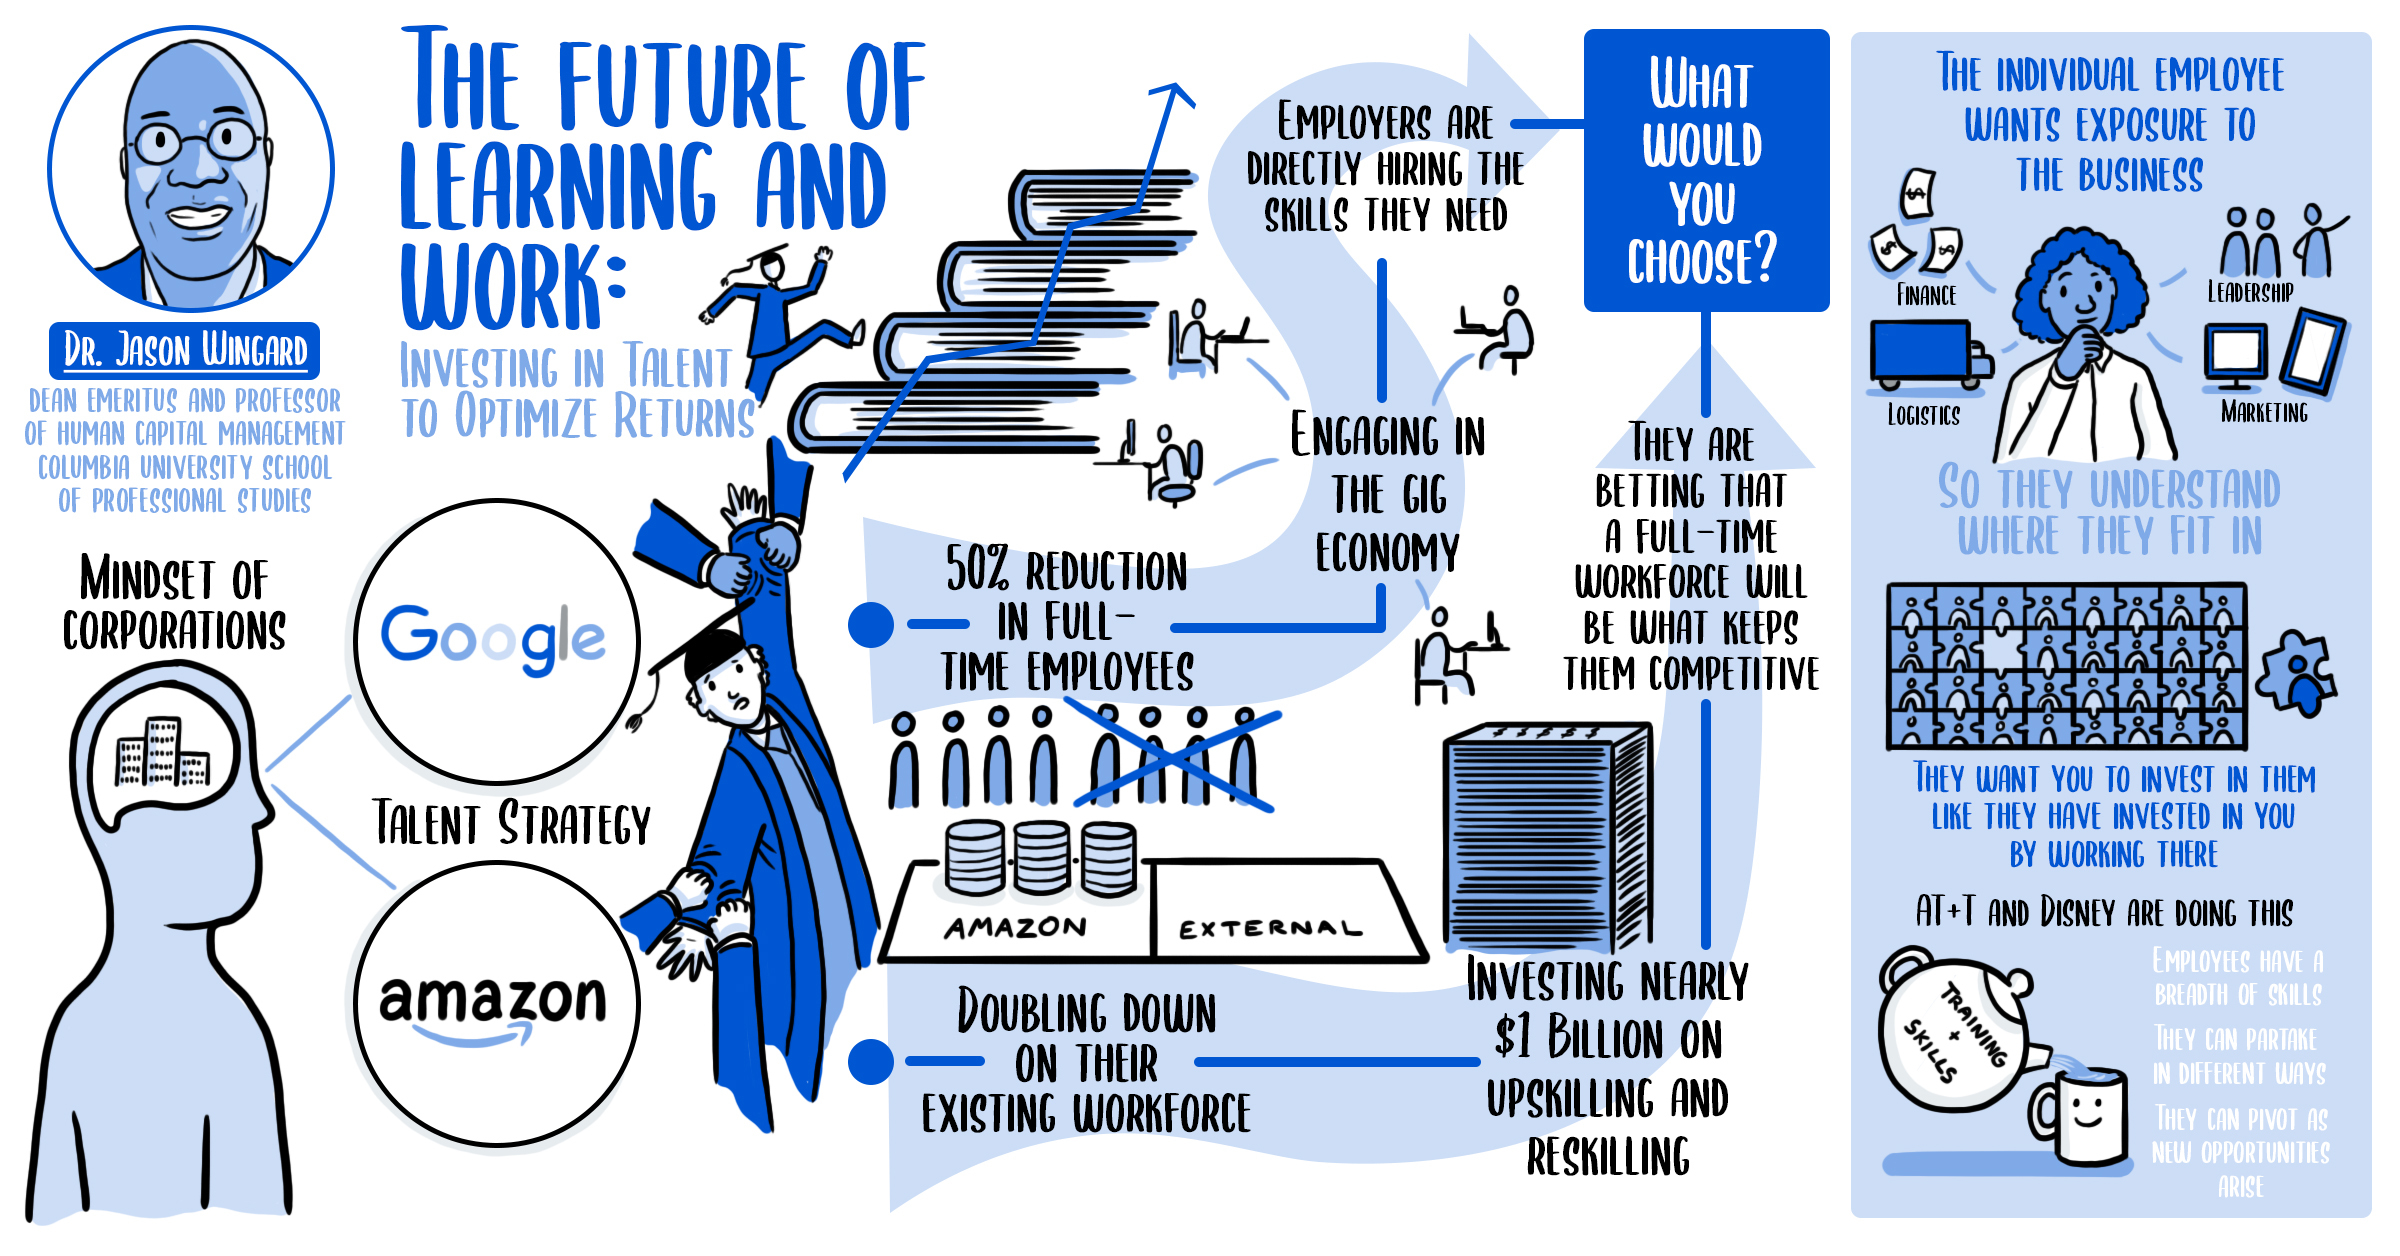 The Future of Learning and Work: Investing in Talent to Optimize Returns